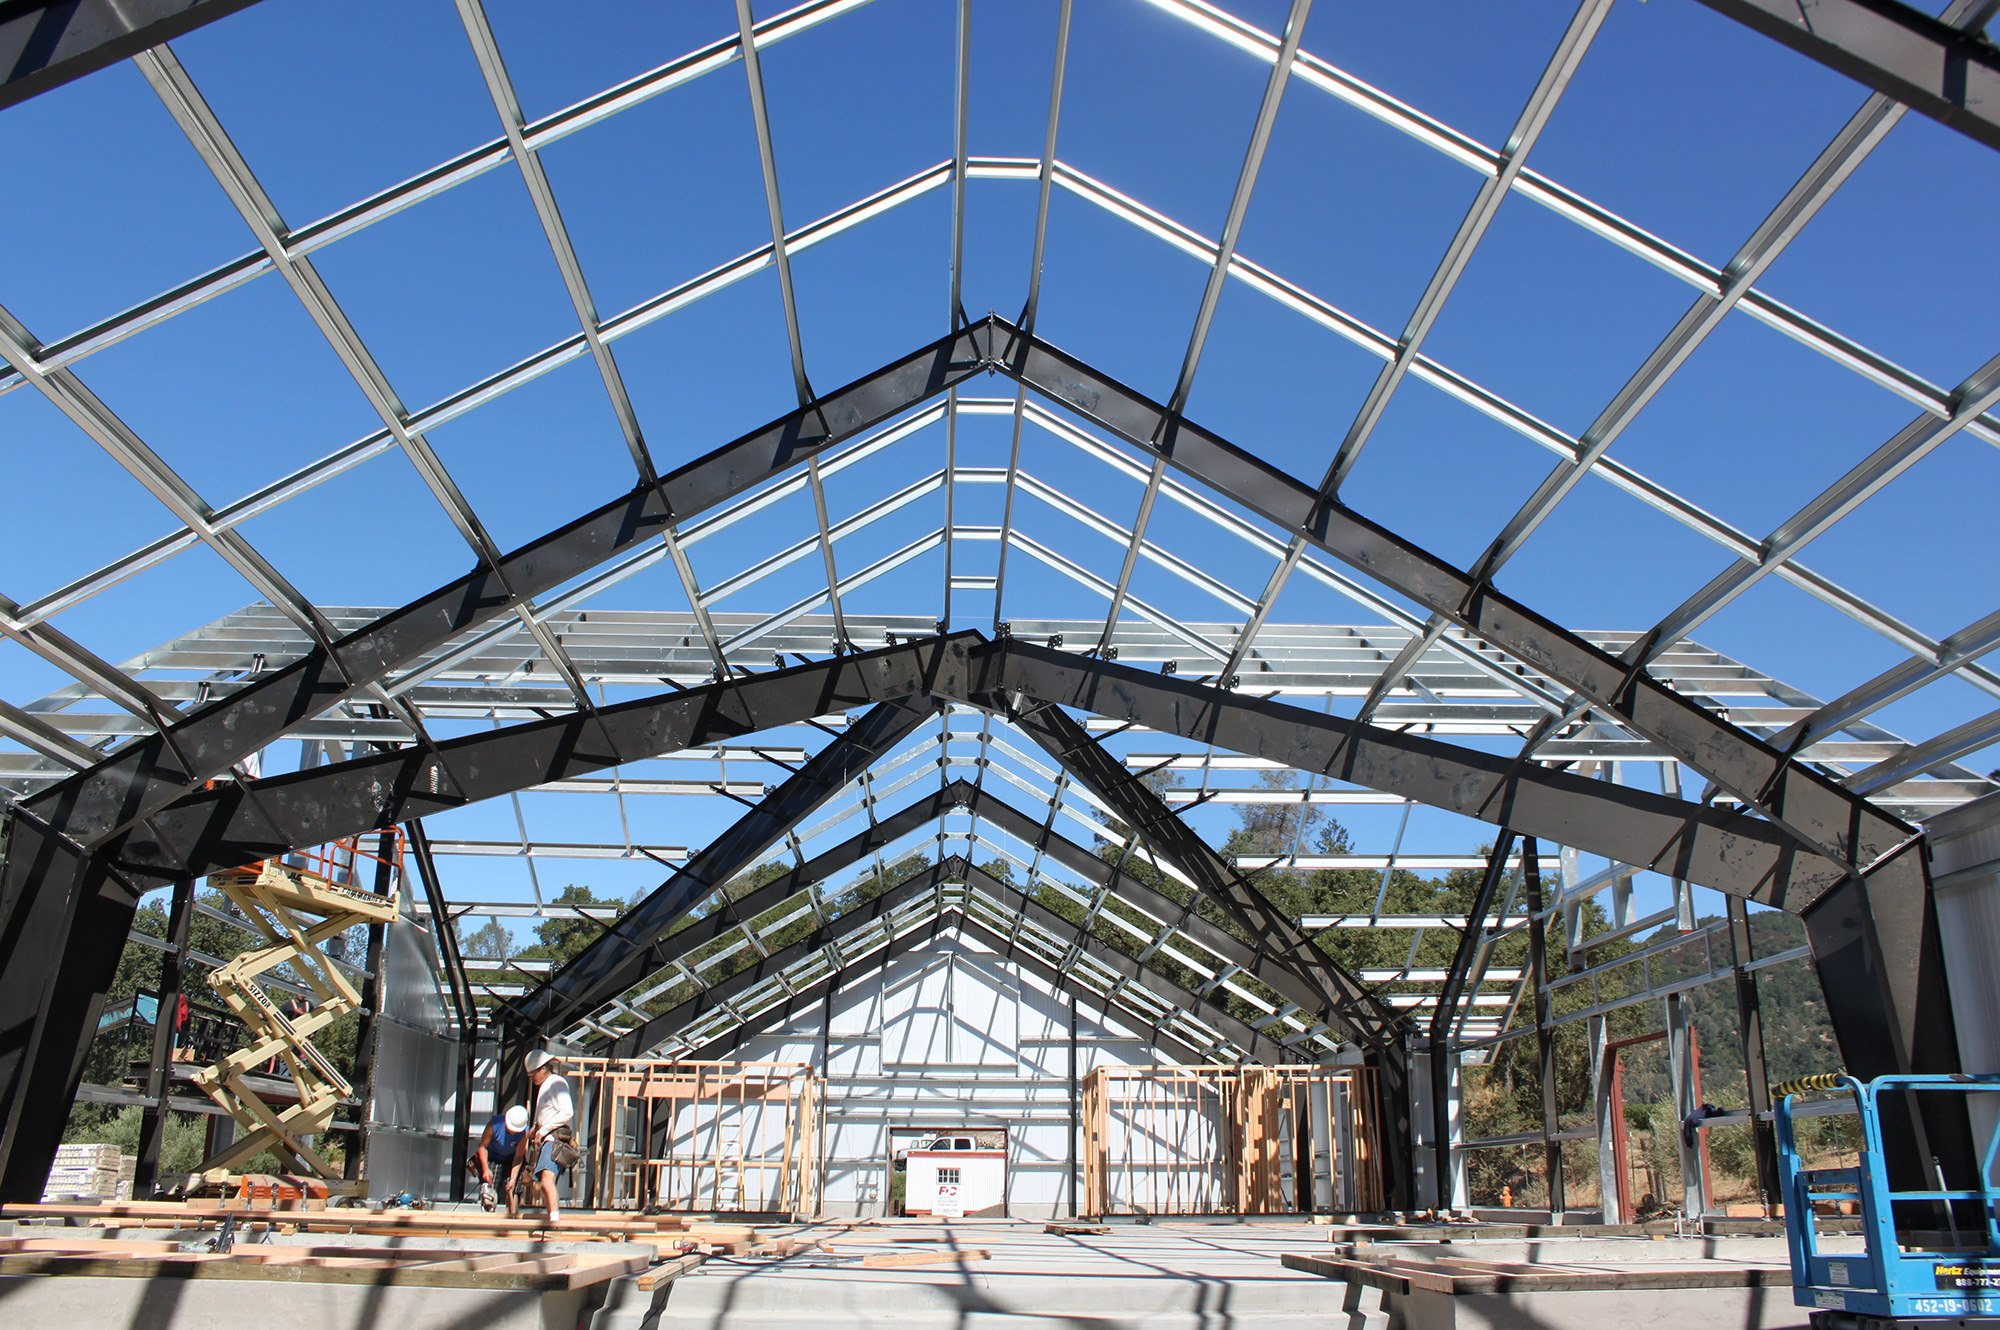 Construction of metal framed winery